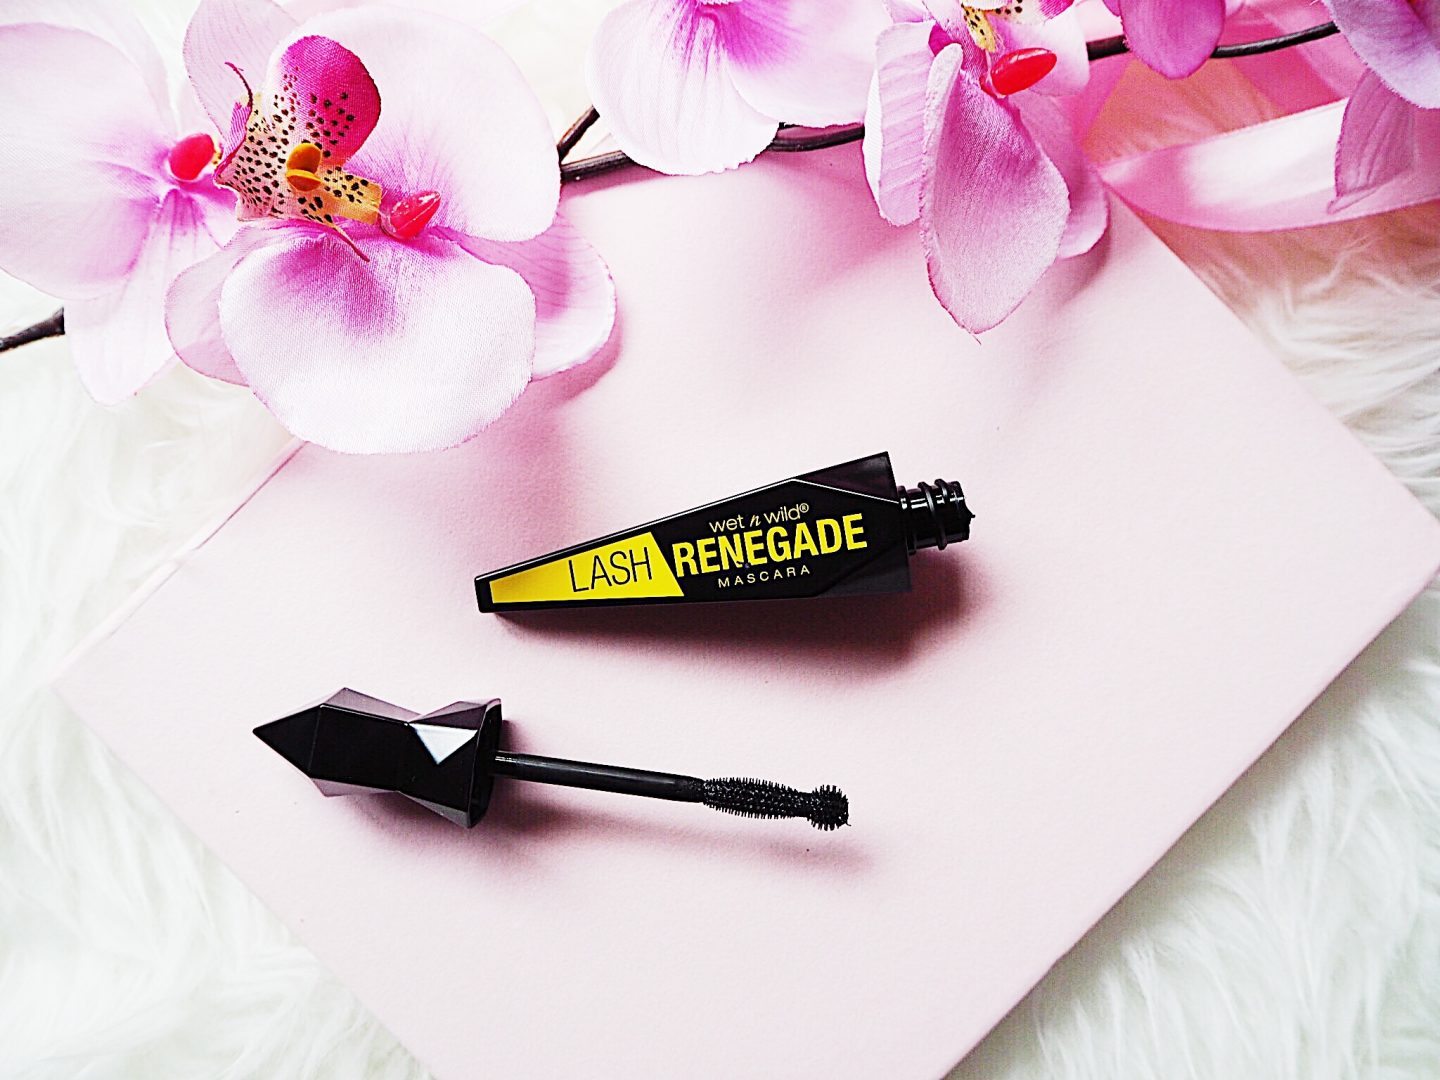 Lash Renegade Mascara By Wet 'N' Wild